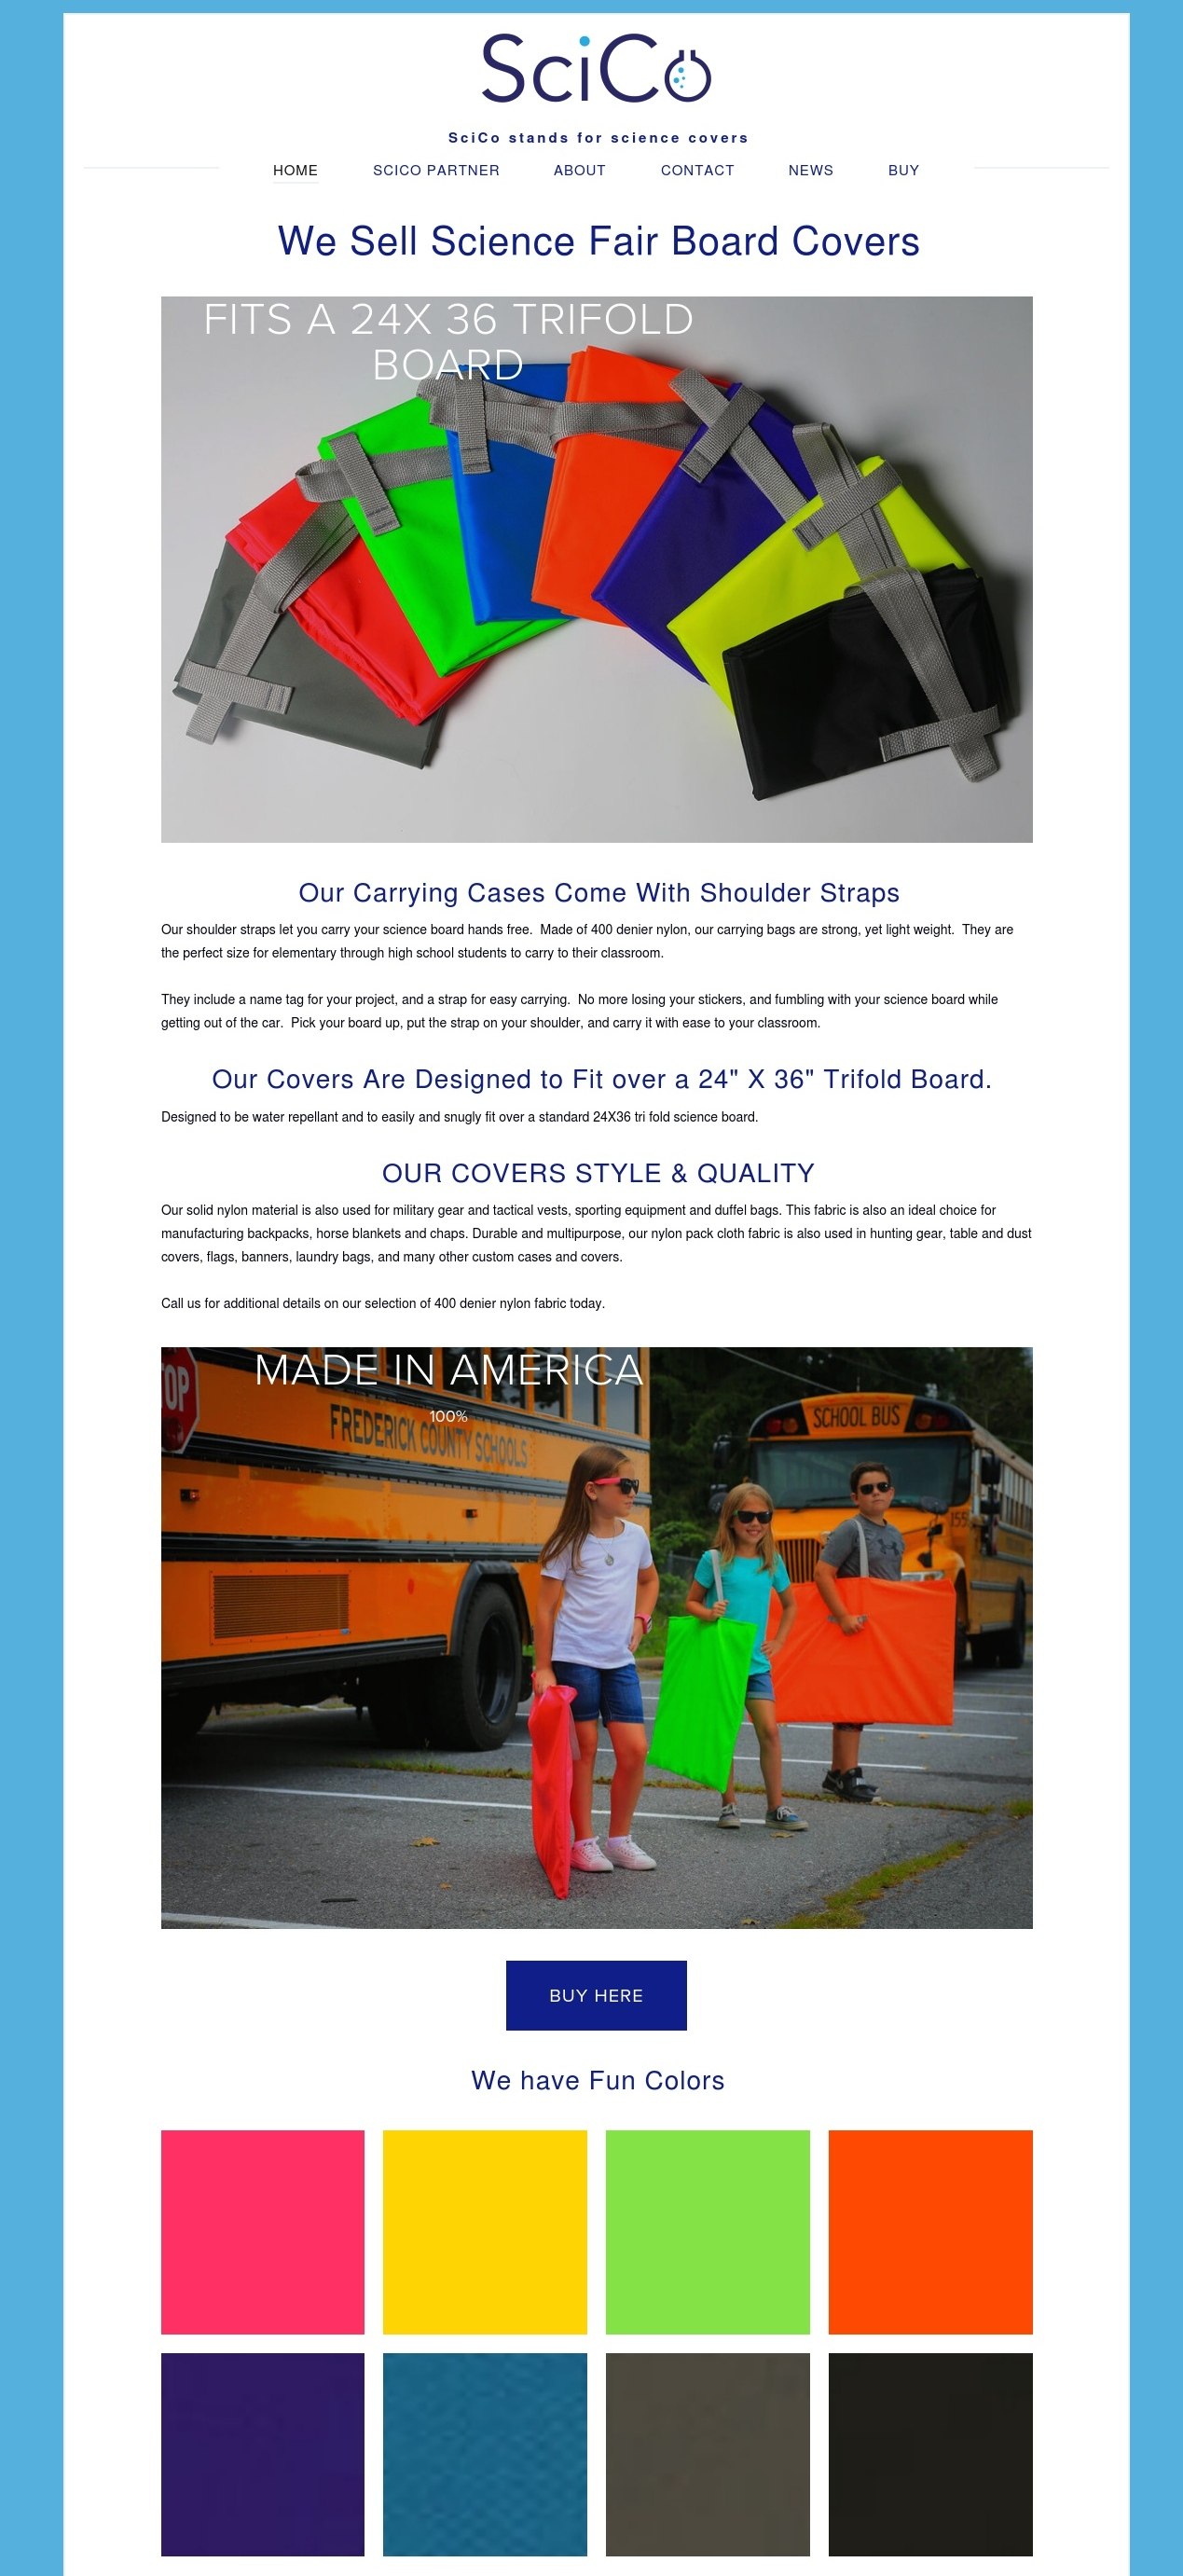 SciCo Products - This is an ecommerce website that ships to anywhere in the US. We did a full model photo shoot, with releases, for SciCo Products. In only 6 months SciCo Products is # 1 in Google for many search terms. Out of 35,300,000 websites she is number 1 and number 2 for science fair carrying cases in Google, not bad for 6 months.